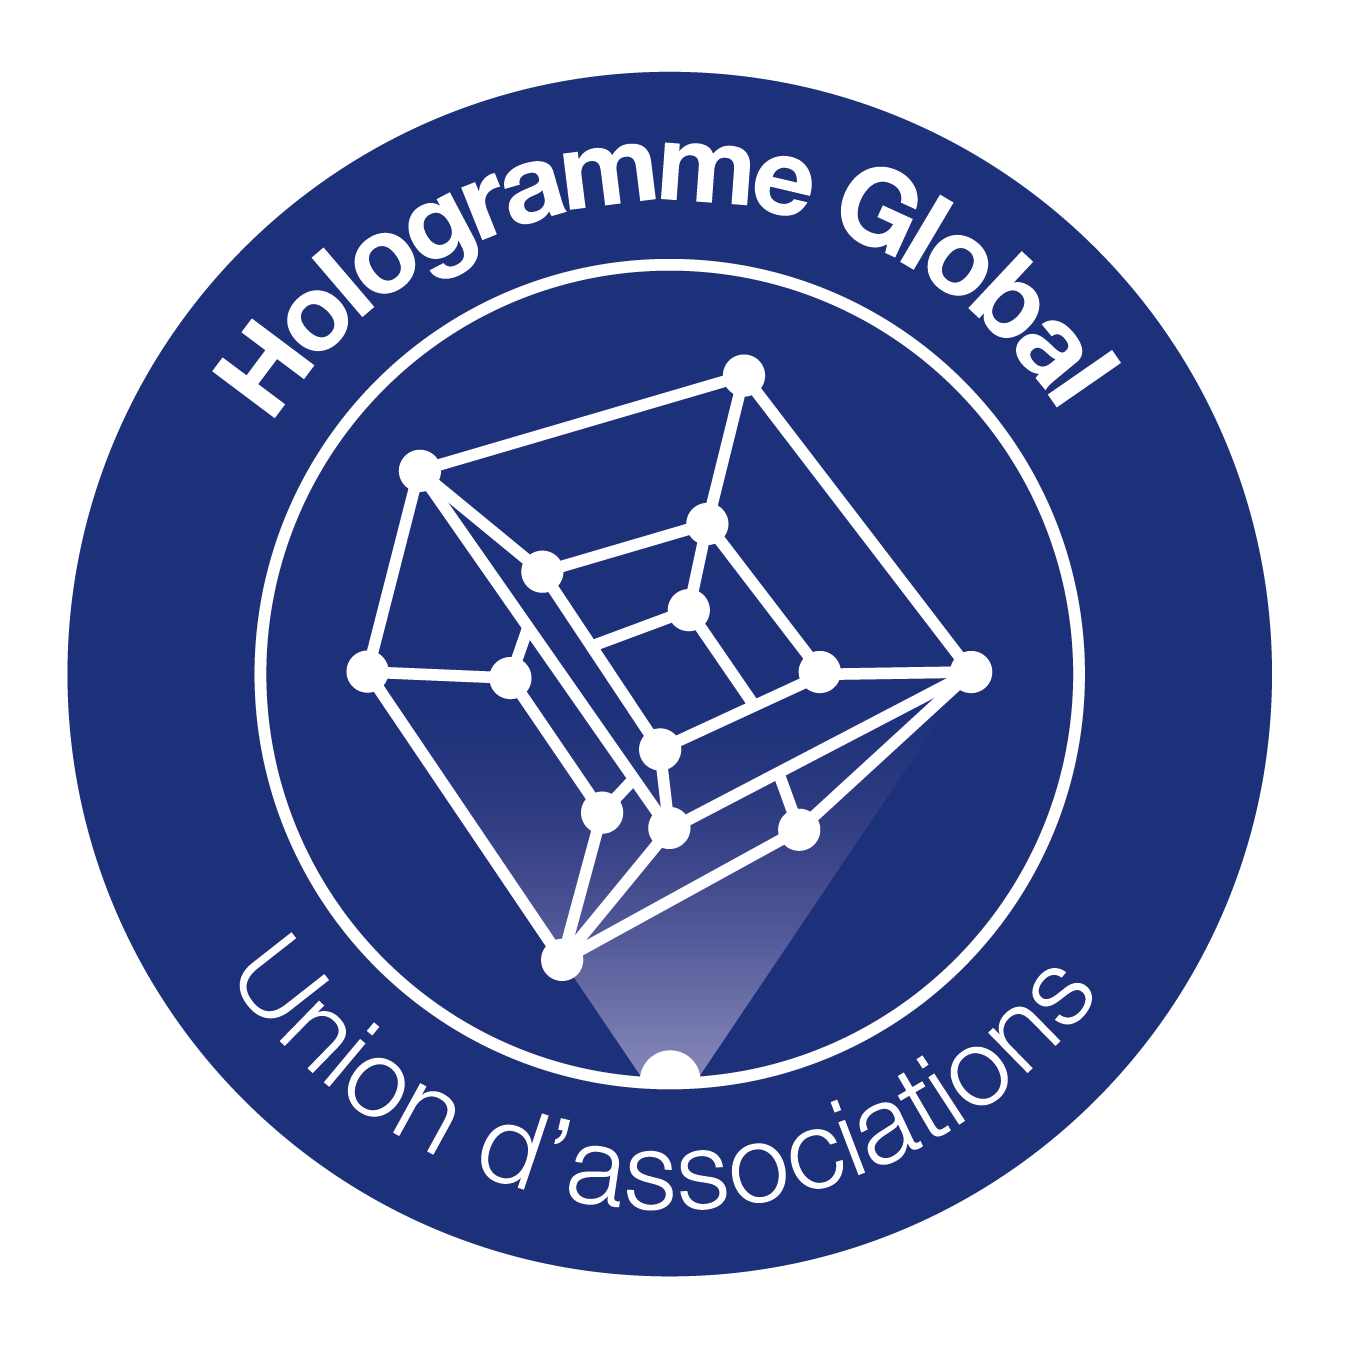 Association - Hologramme Global